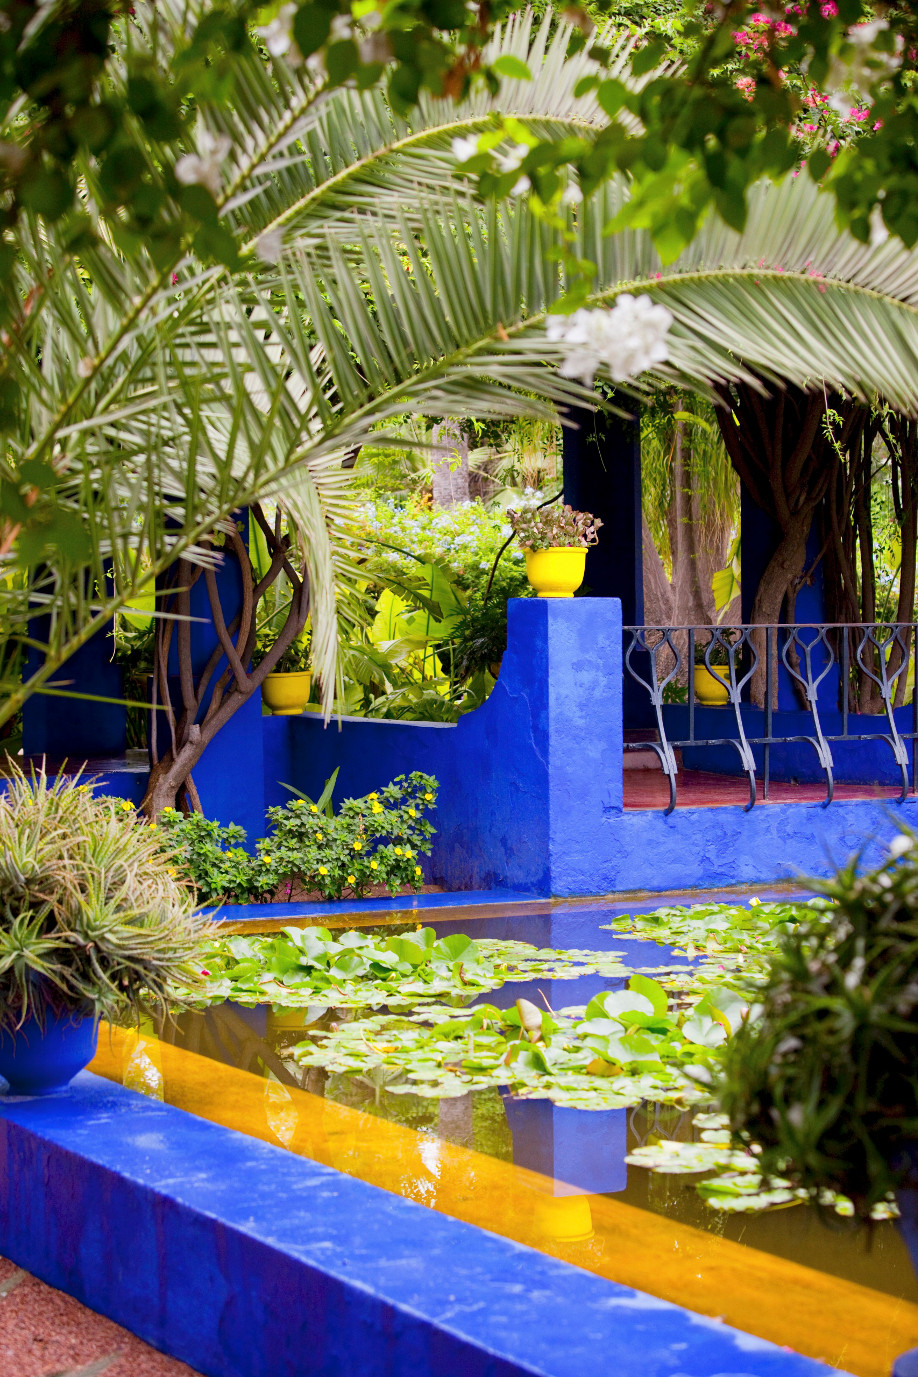 westwing-ogrody-majorelle-7